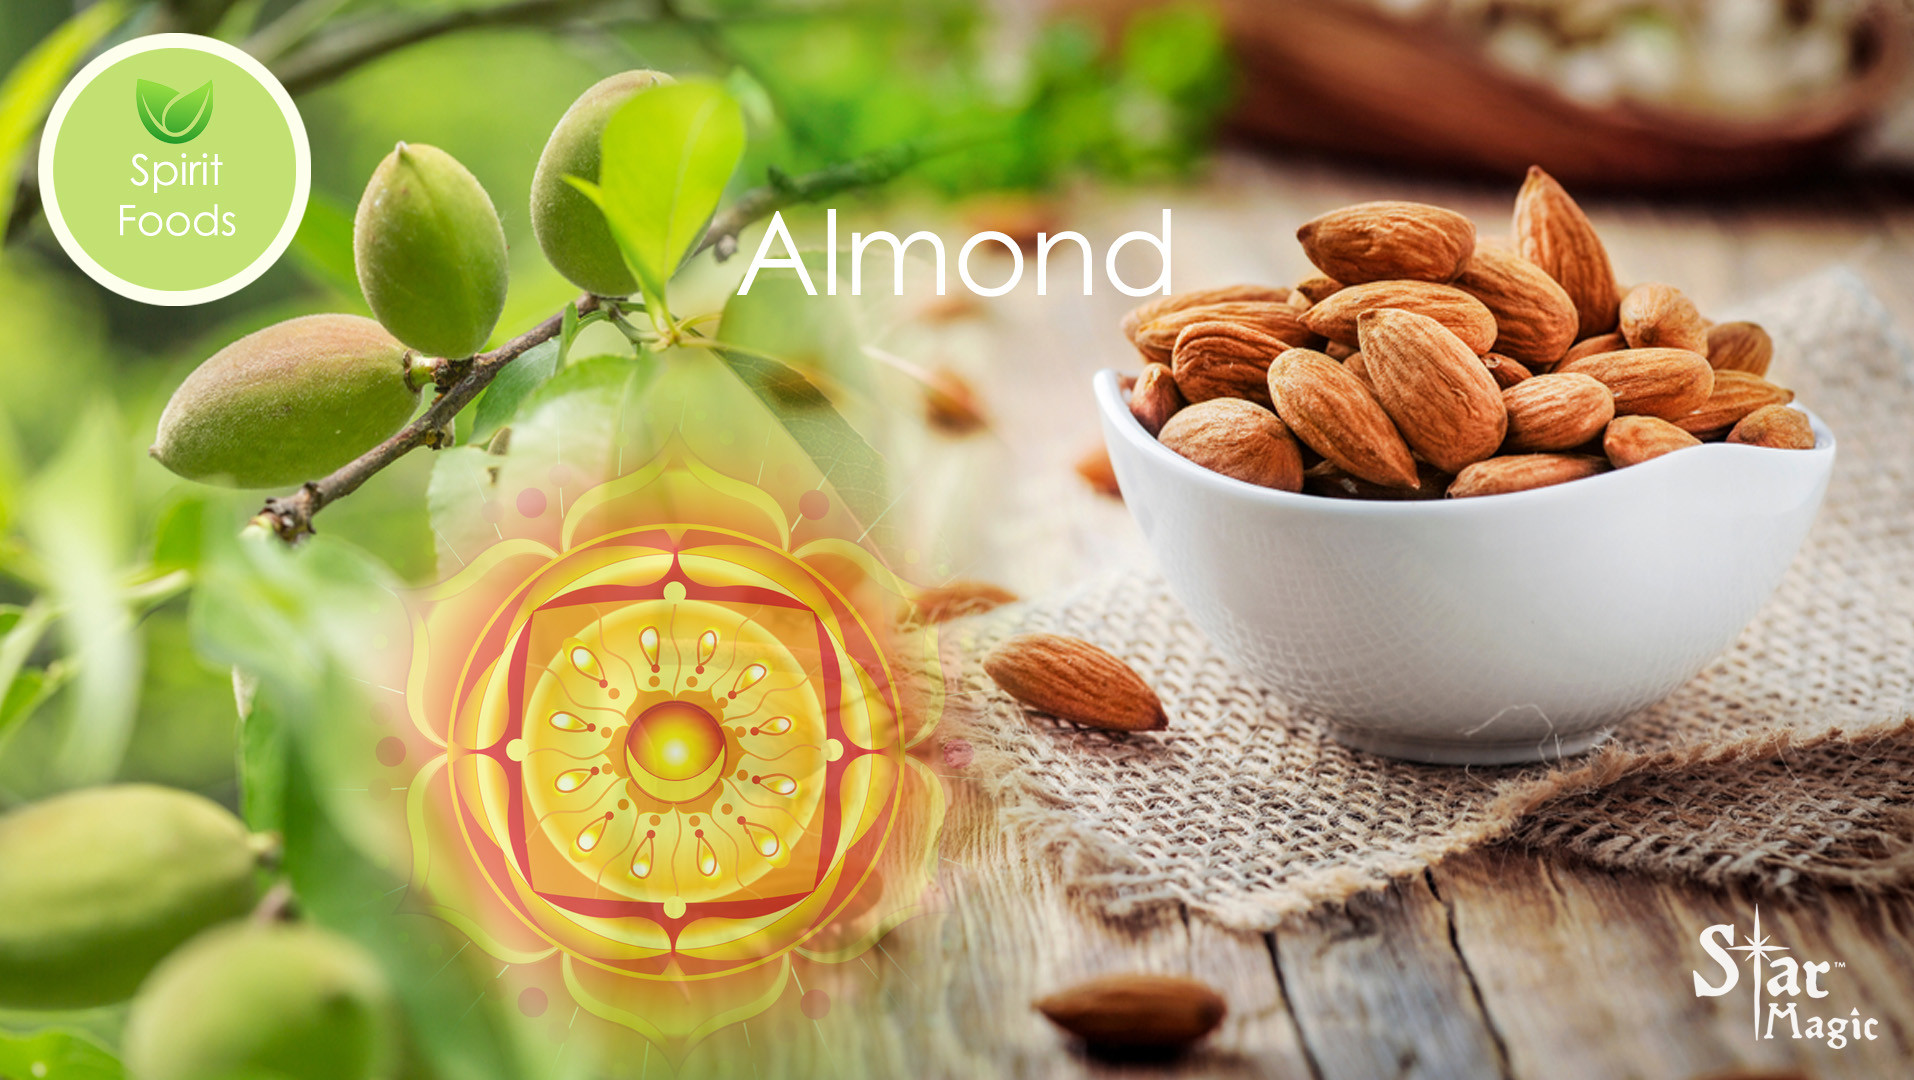 Spirit Food – Almond